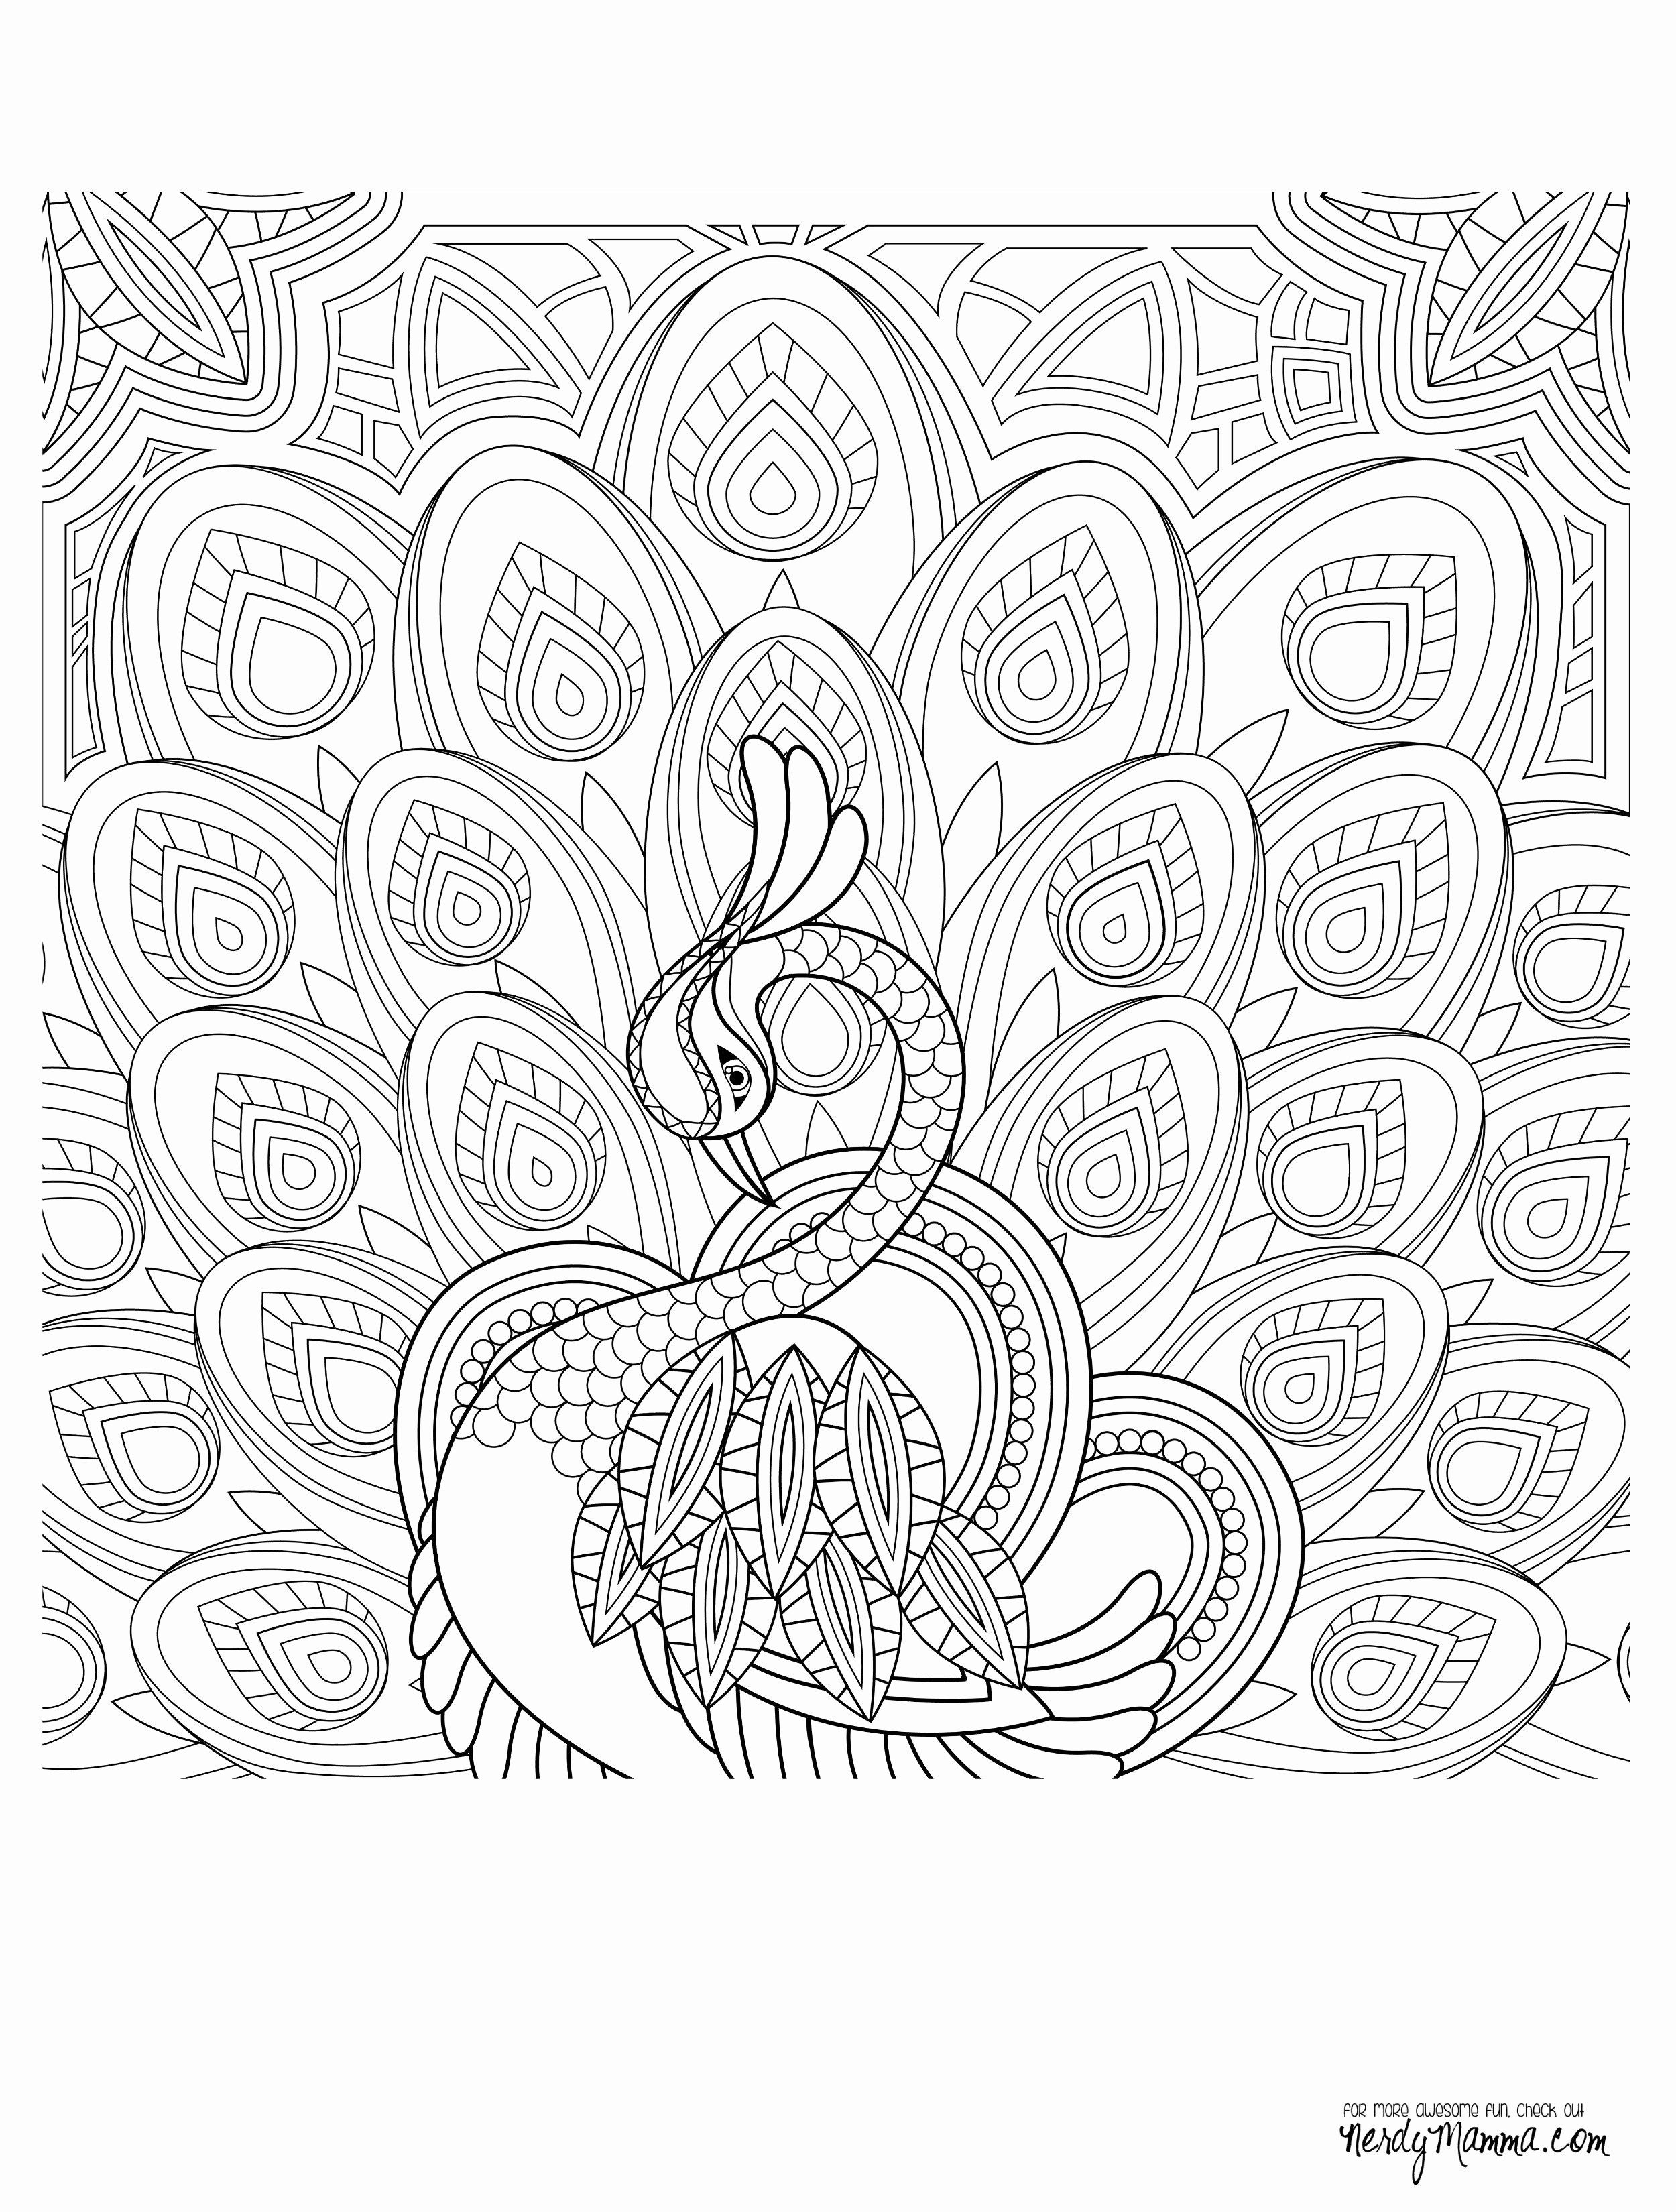 free printable skull coloring pages Collection-Free Printable Coloring Pages For Adults Best Awesome Coloring Page For Adult Od Kids Simple Floral Heart With 10-b